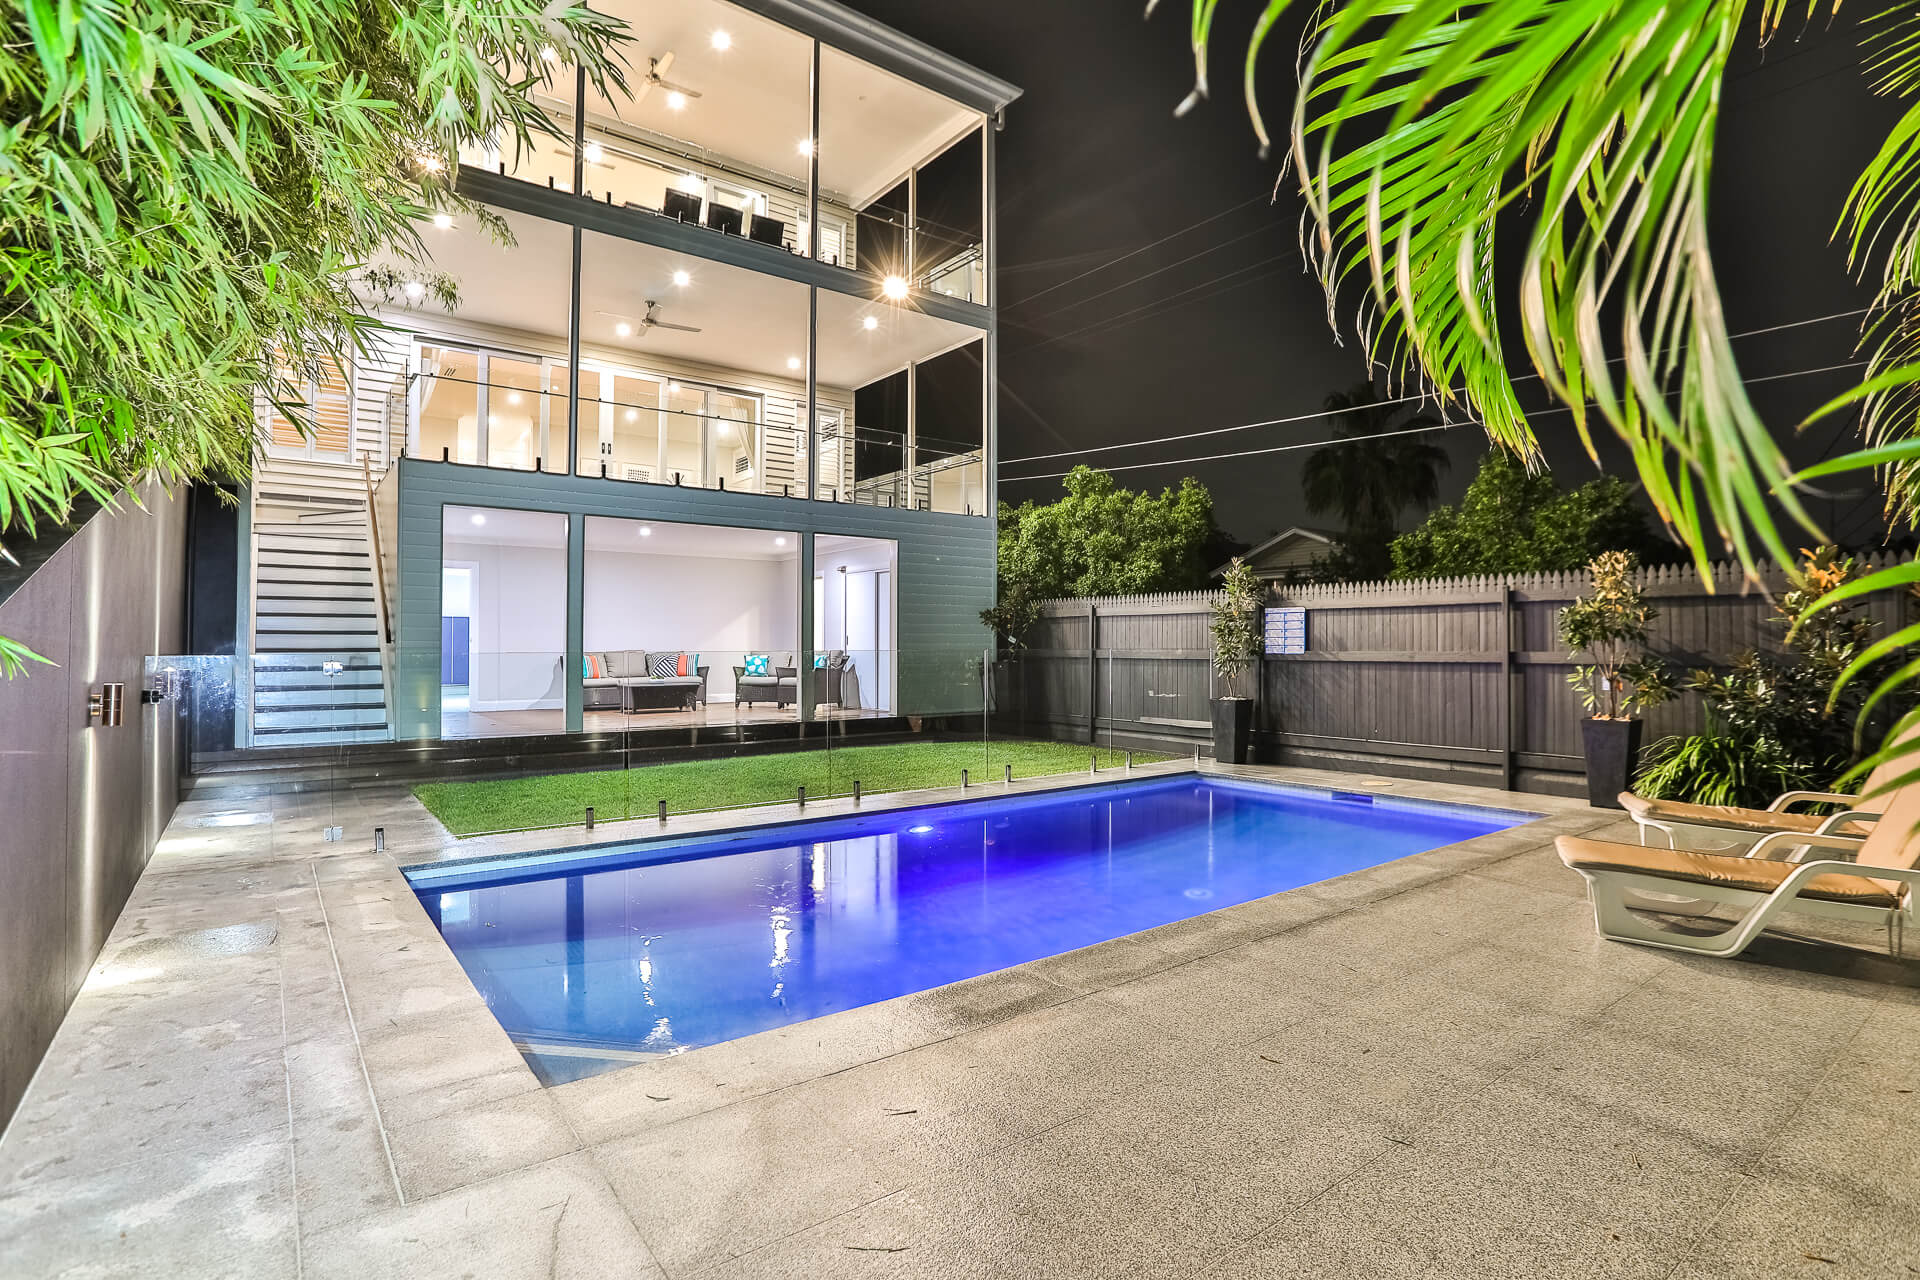 pool area at back of brisbane home